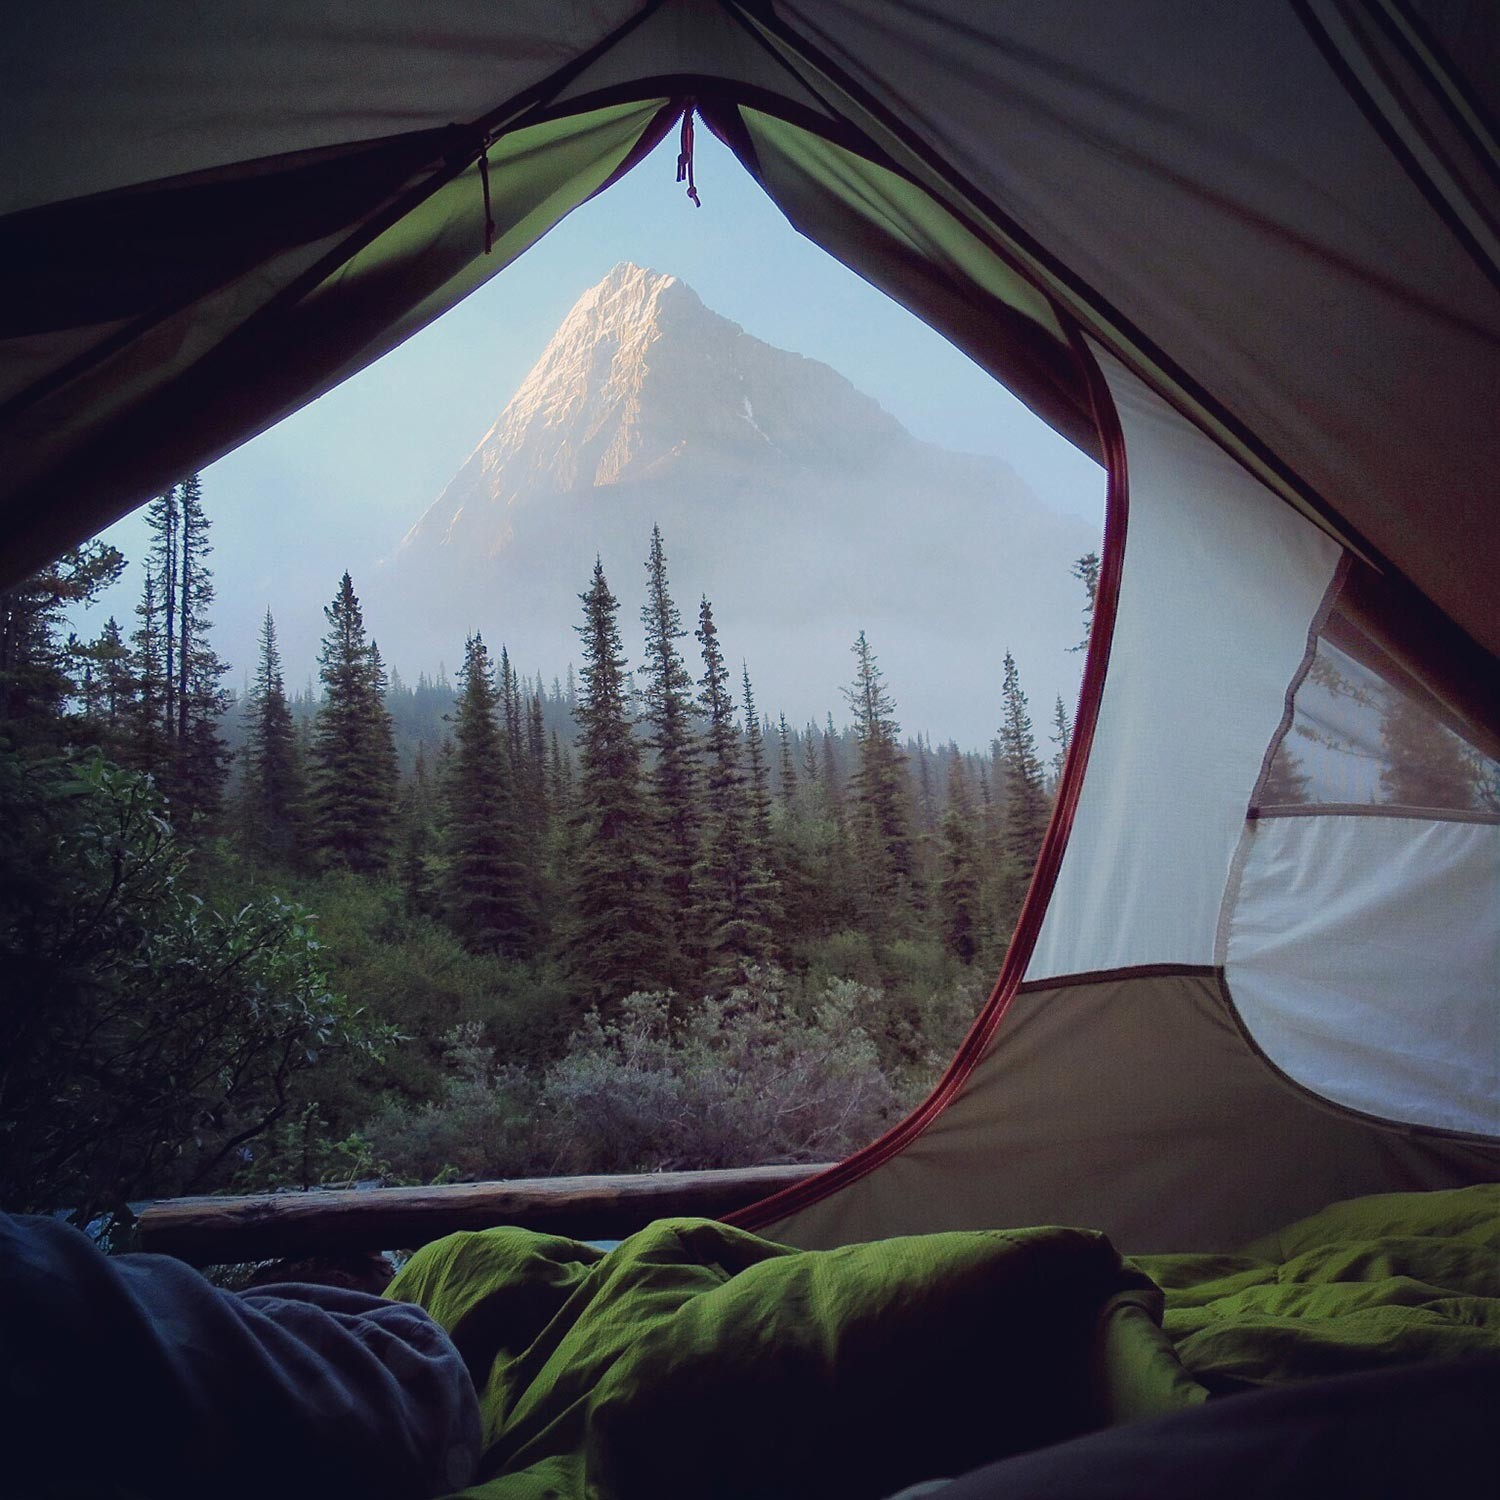 Stephen-Walasavage---Majestic-Morning-View---CampTrend